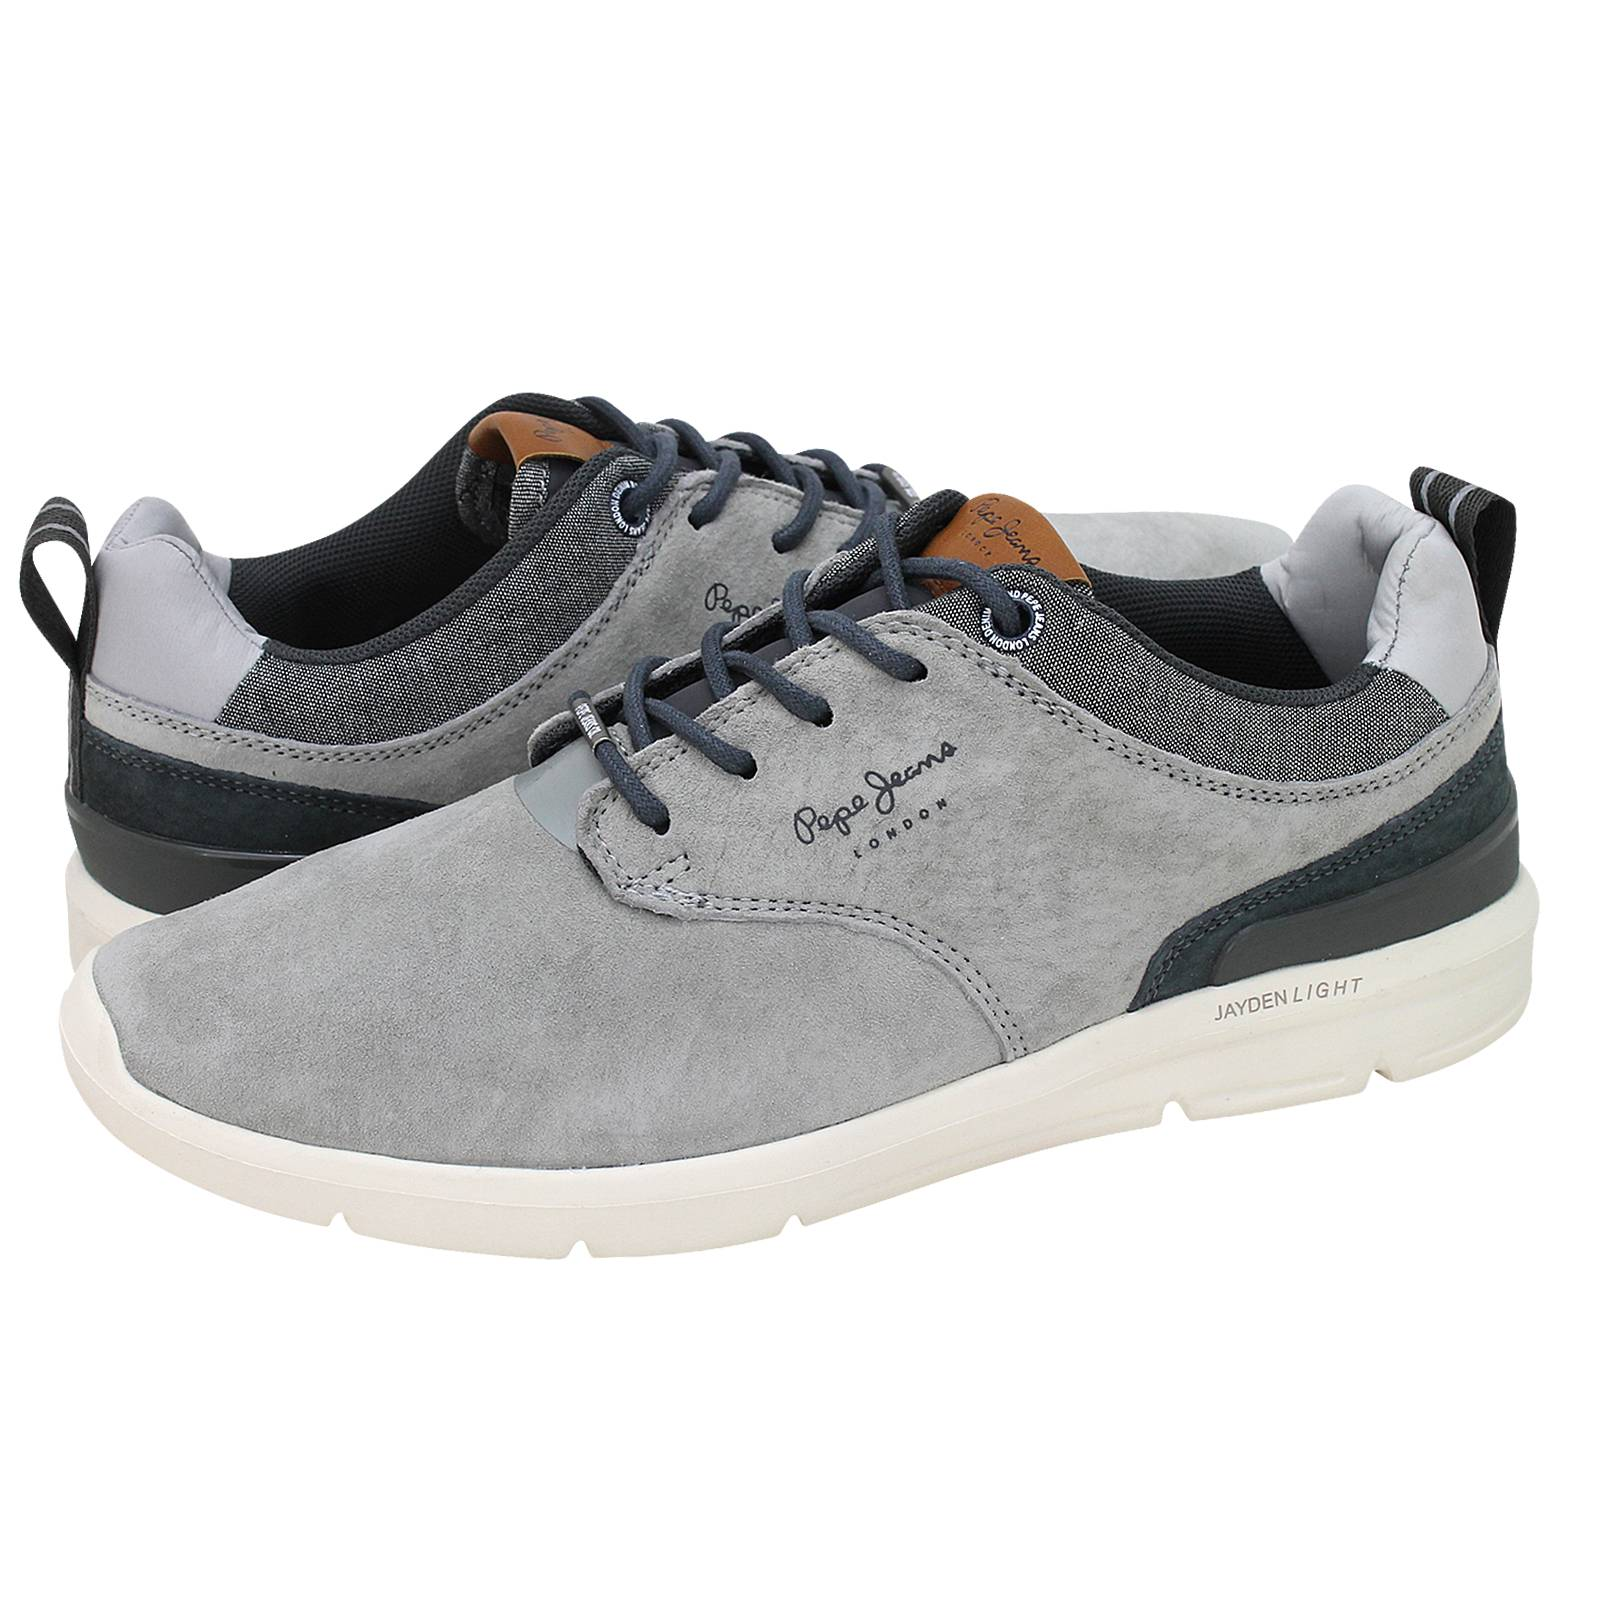 a2166c3c104 Jayden 2.1 Essentials - Pepe Jeans Men's casual shoes made of suede ...